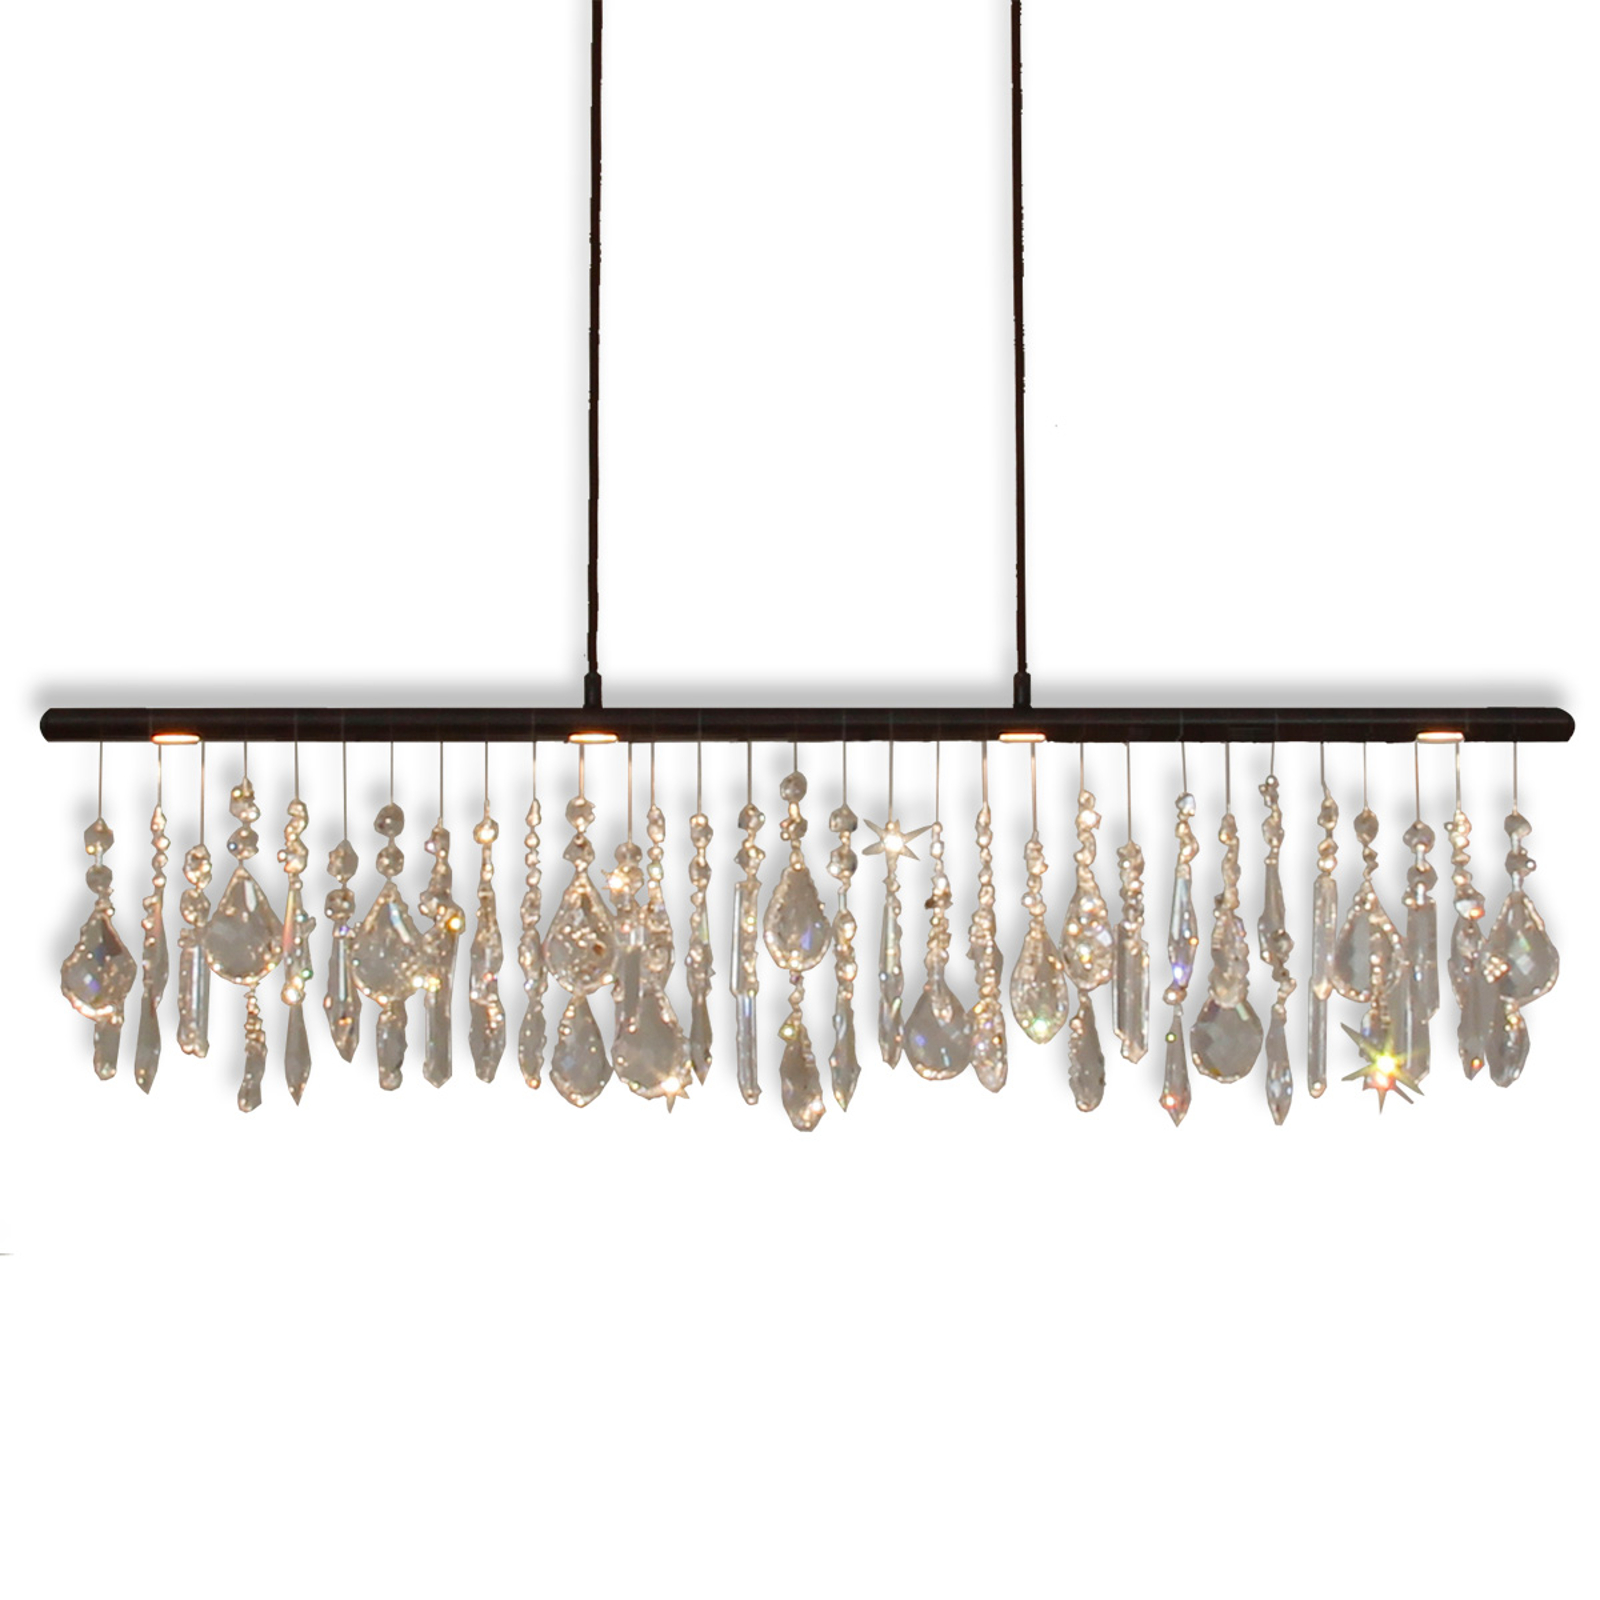 Menzel Anteo - LED hanging light, crystal elements_6528182_1